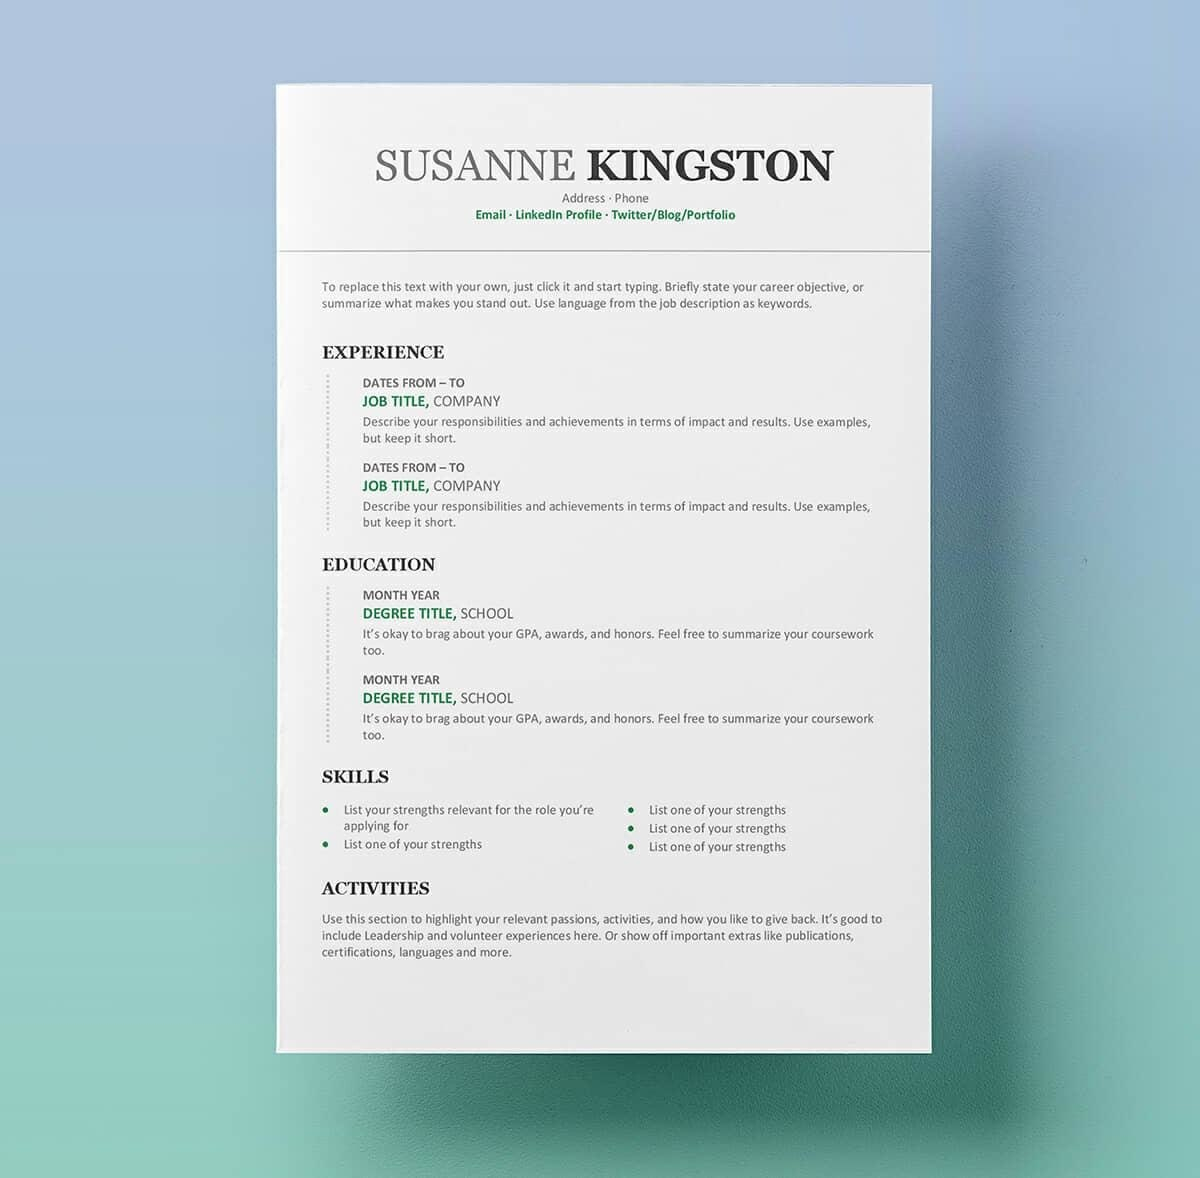 Free Resume Templates For Word  Cvresume Formats To Download Inside How To Get A Resume Template On Word